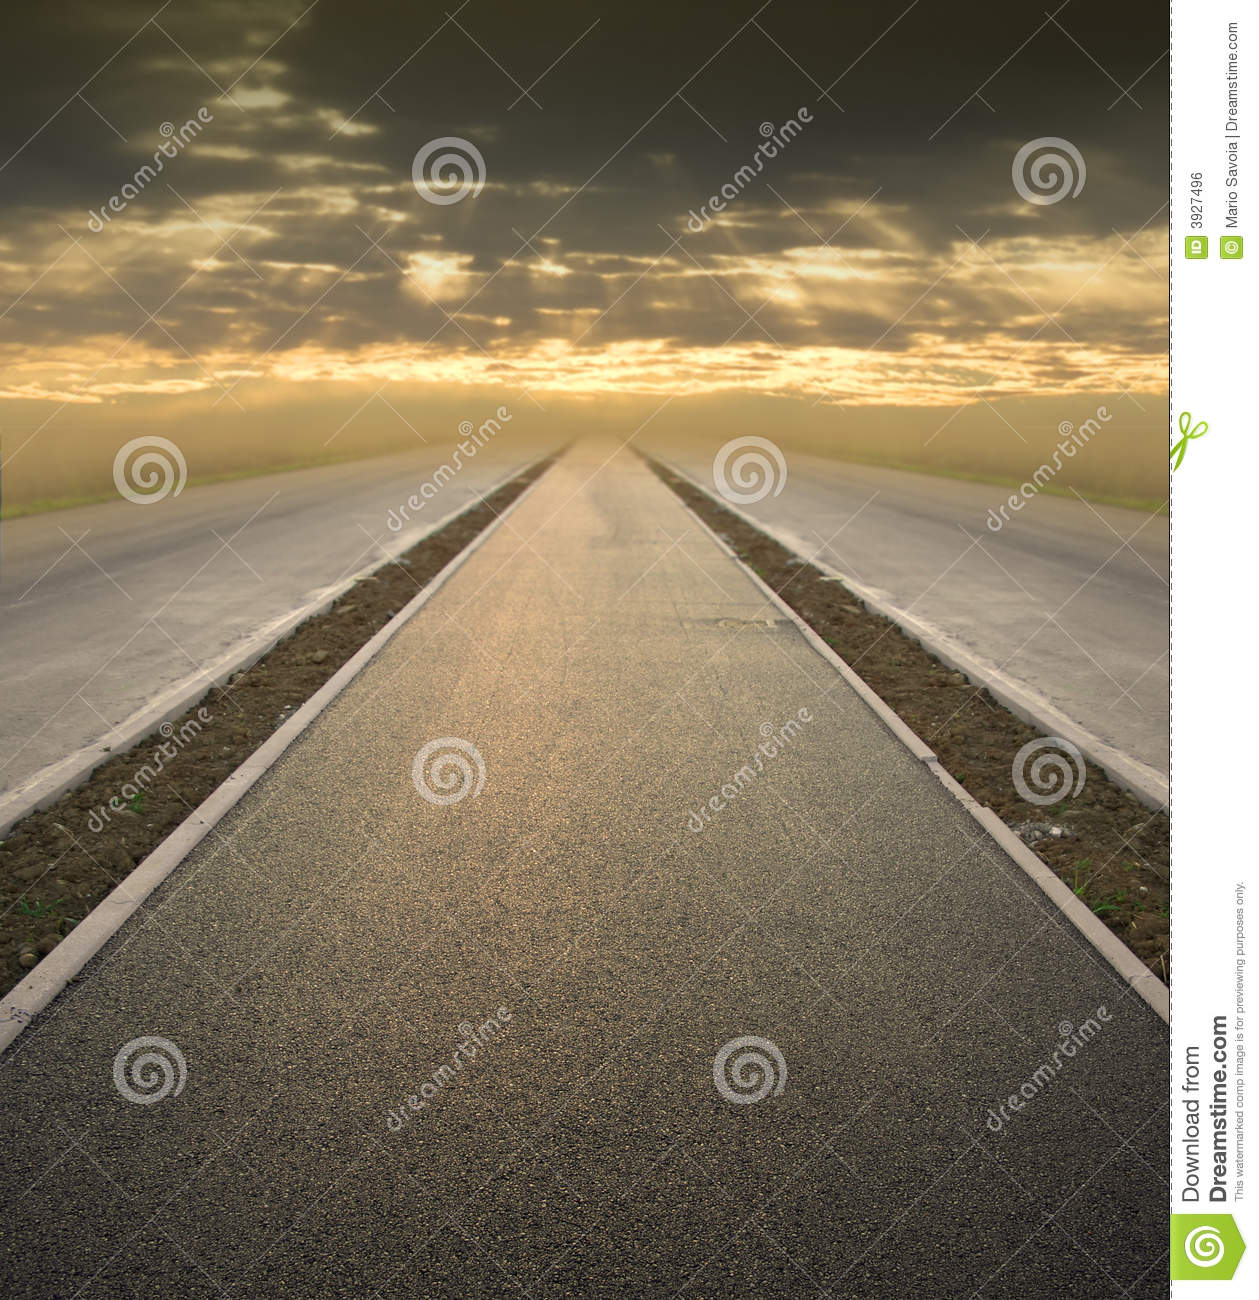 Road to the future